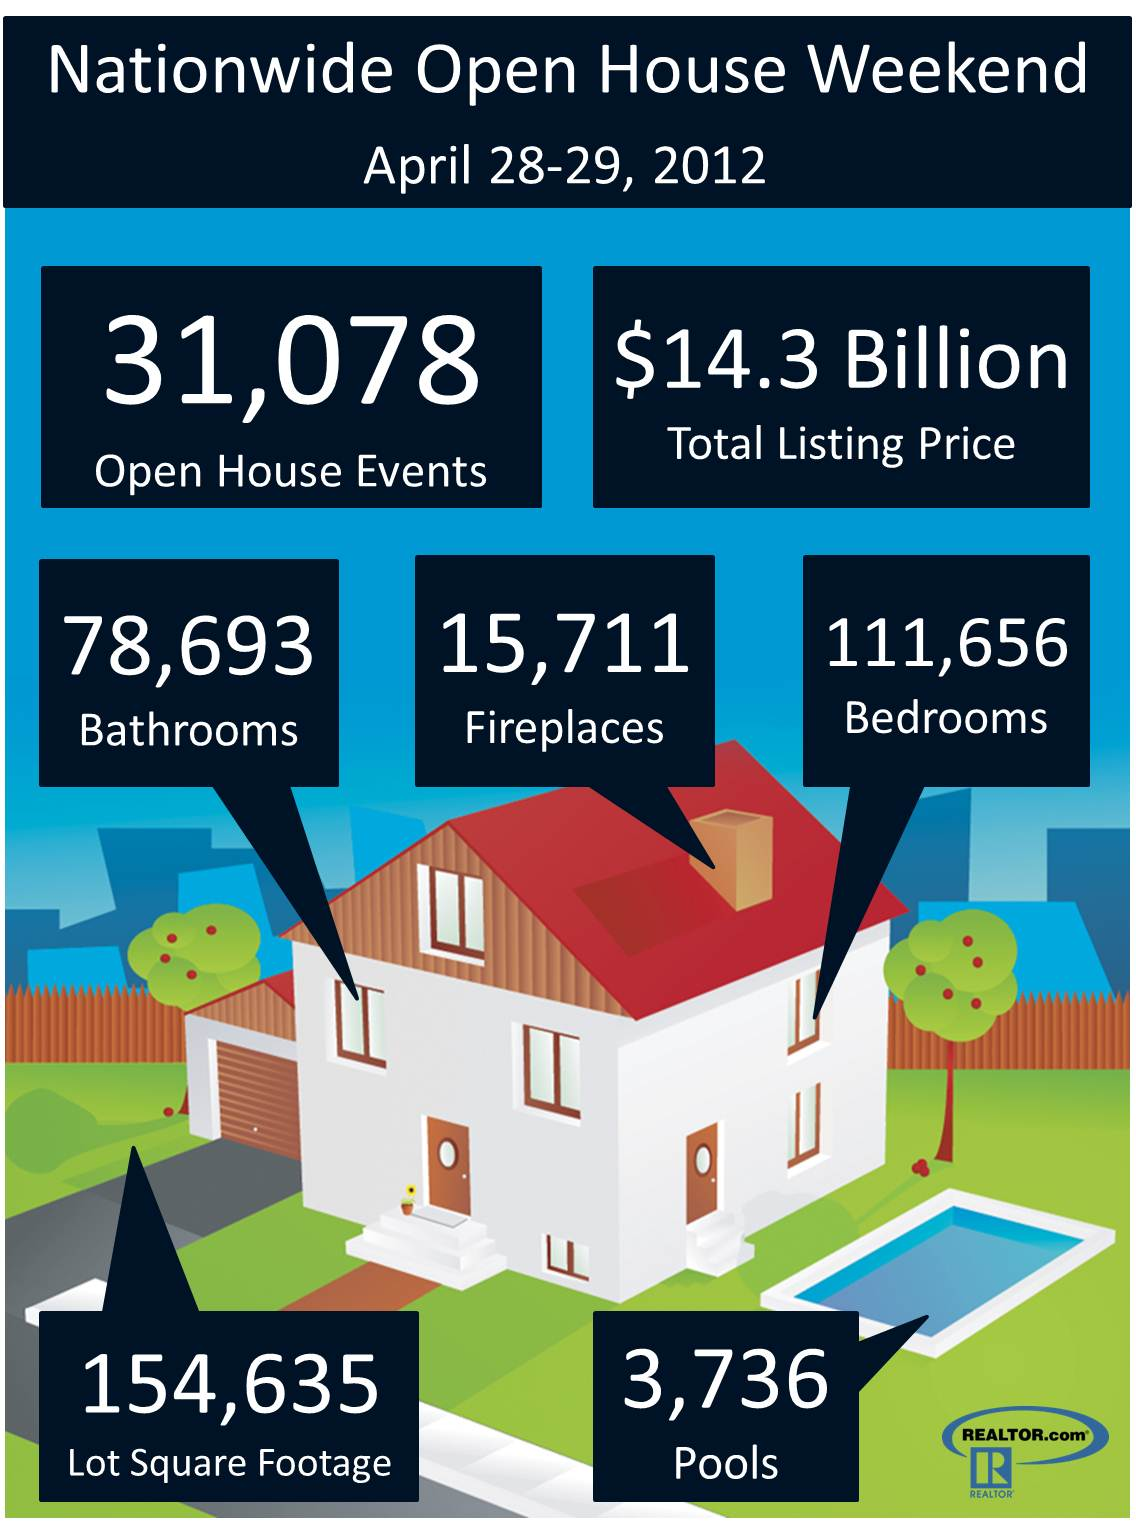 Some Fun Facts About Open Houses